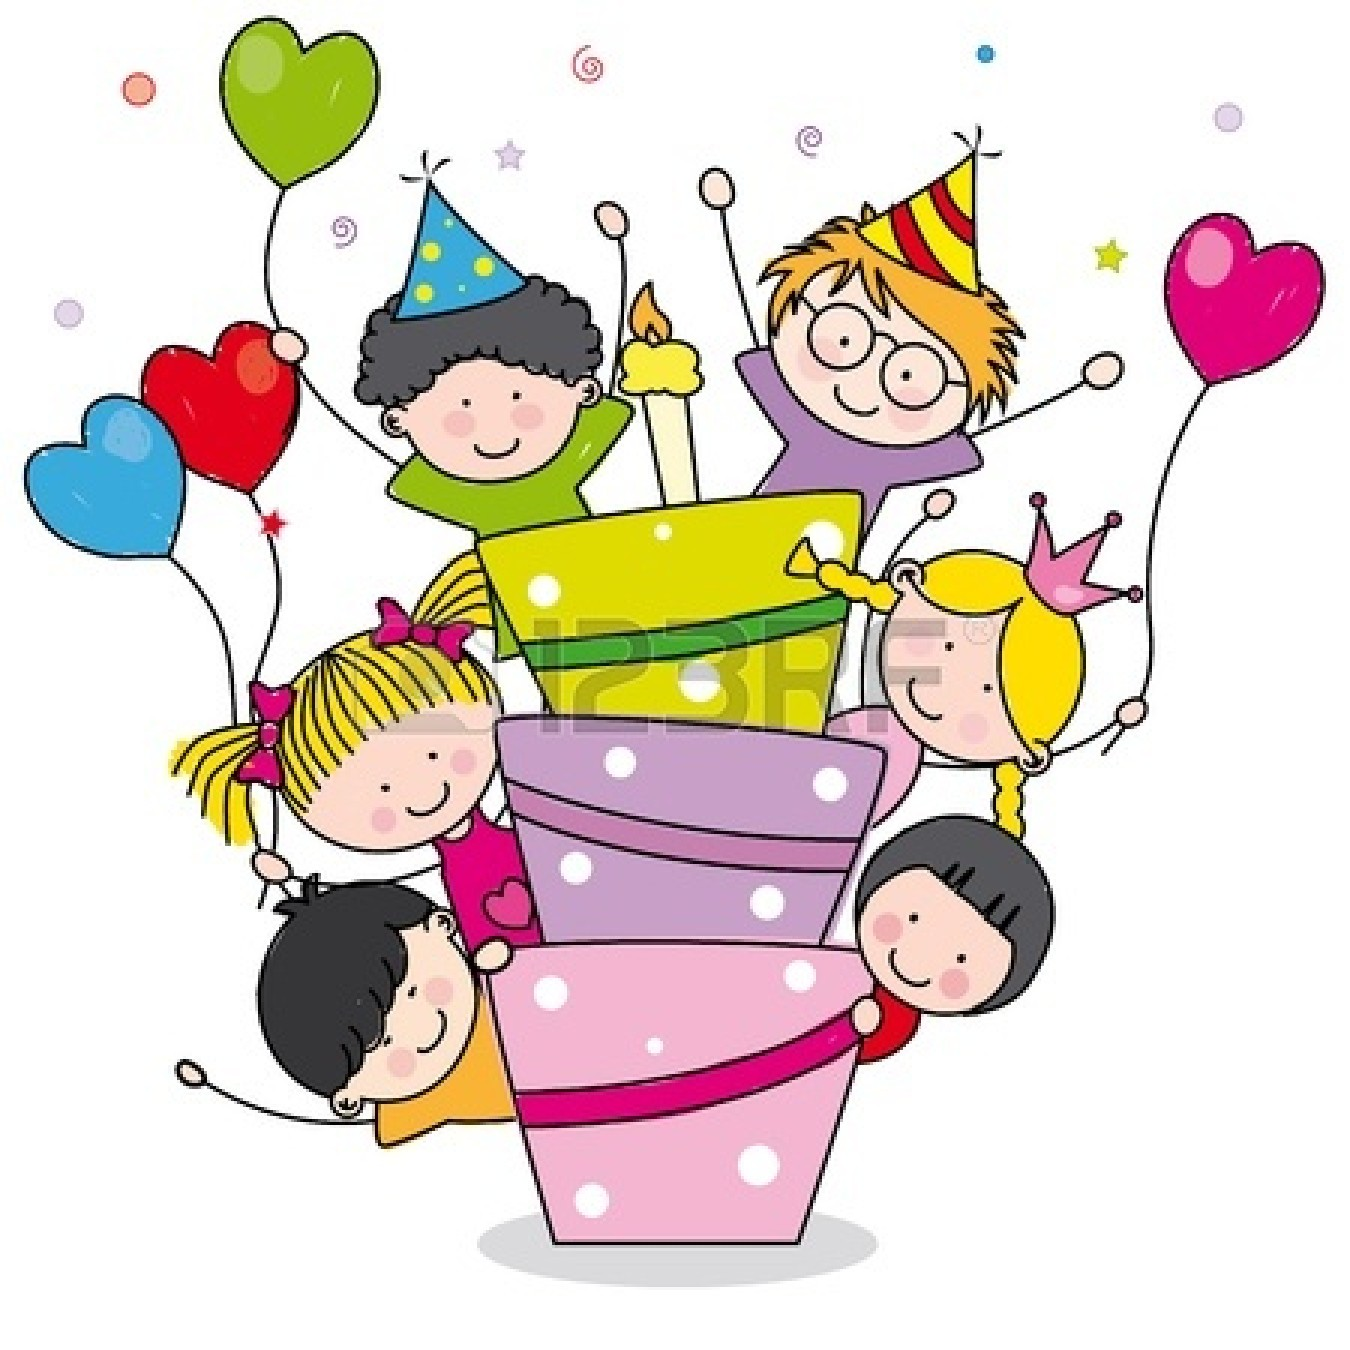 Kids party clip art. Surprise clipart birthday celebration